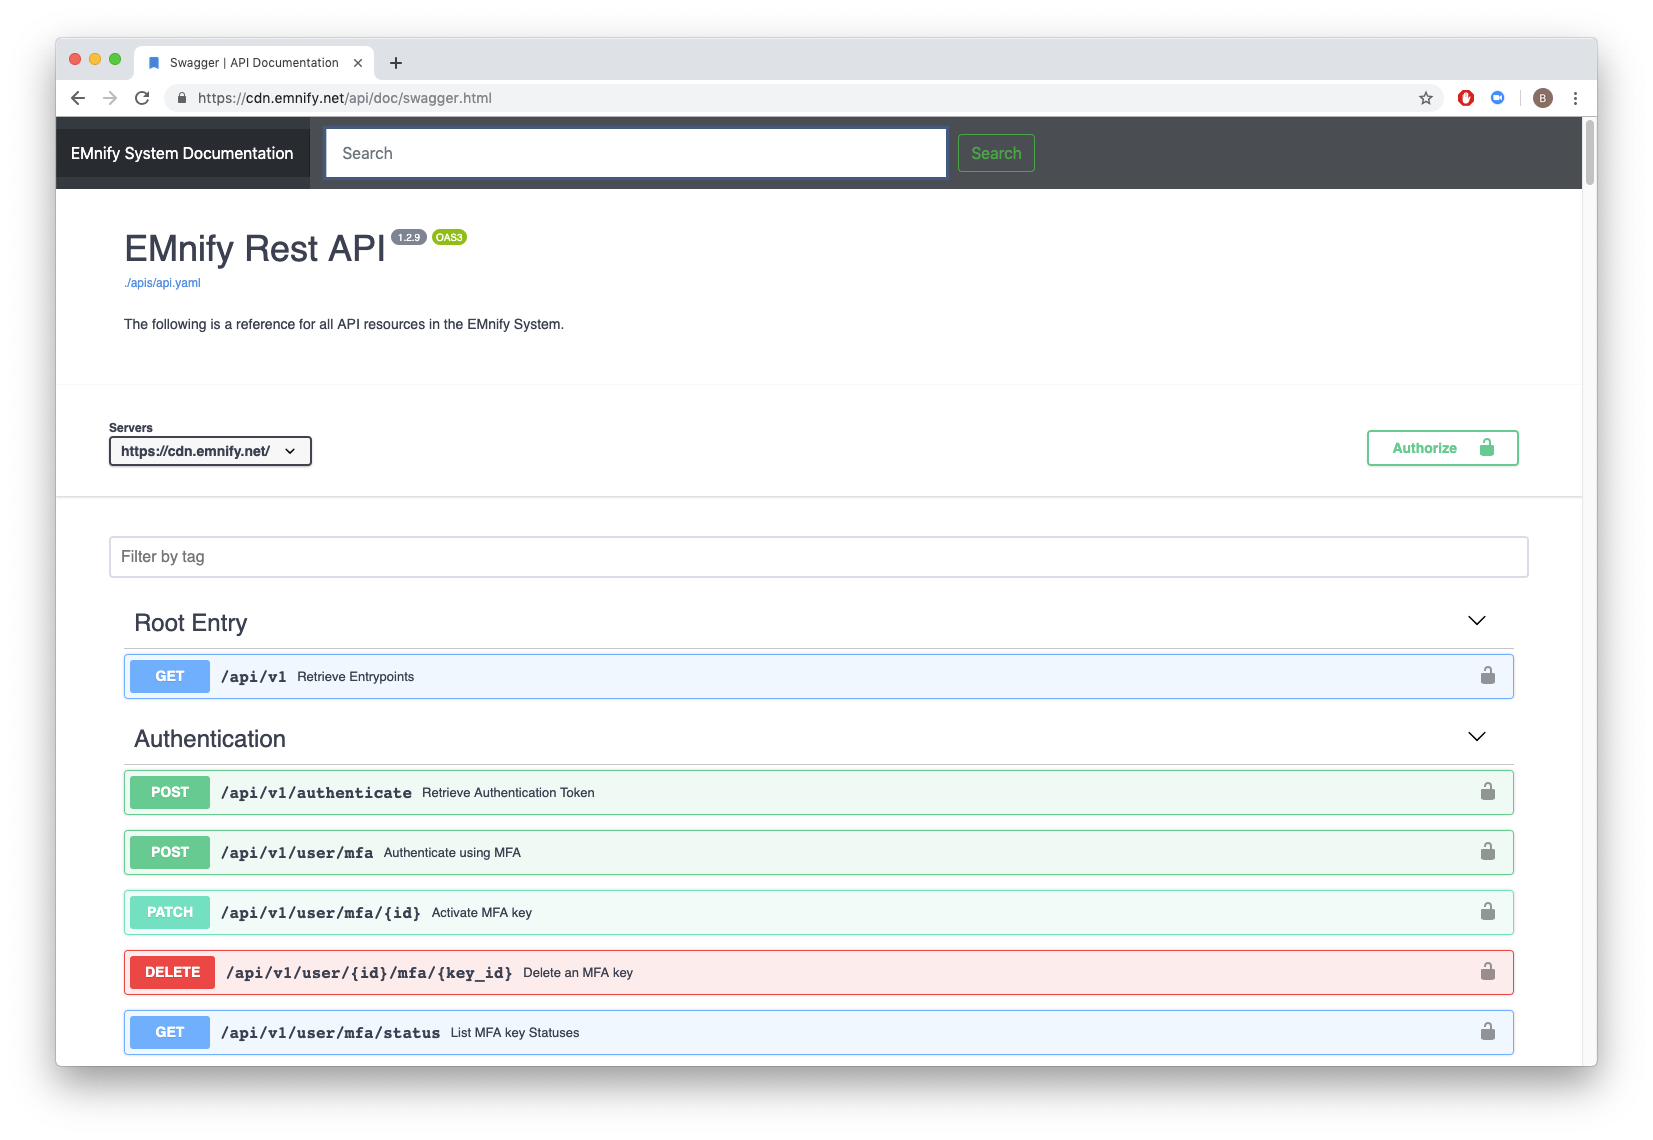 The best API experience with our new EMnify API documentation